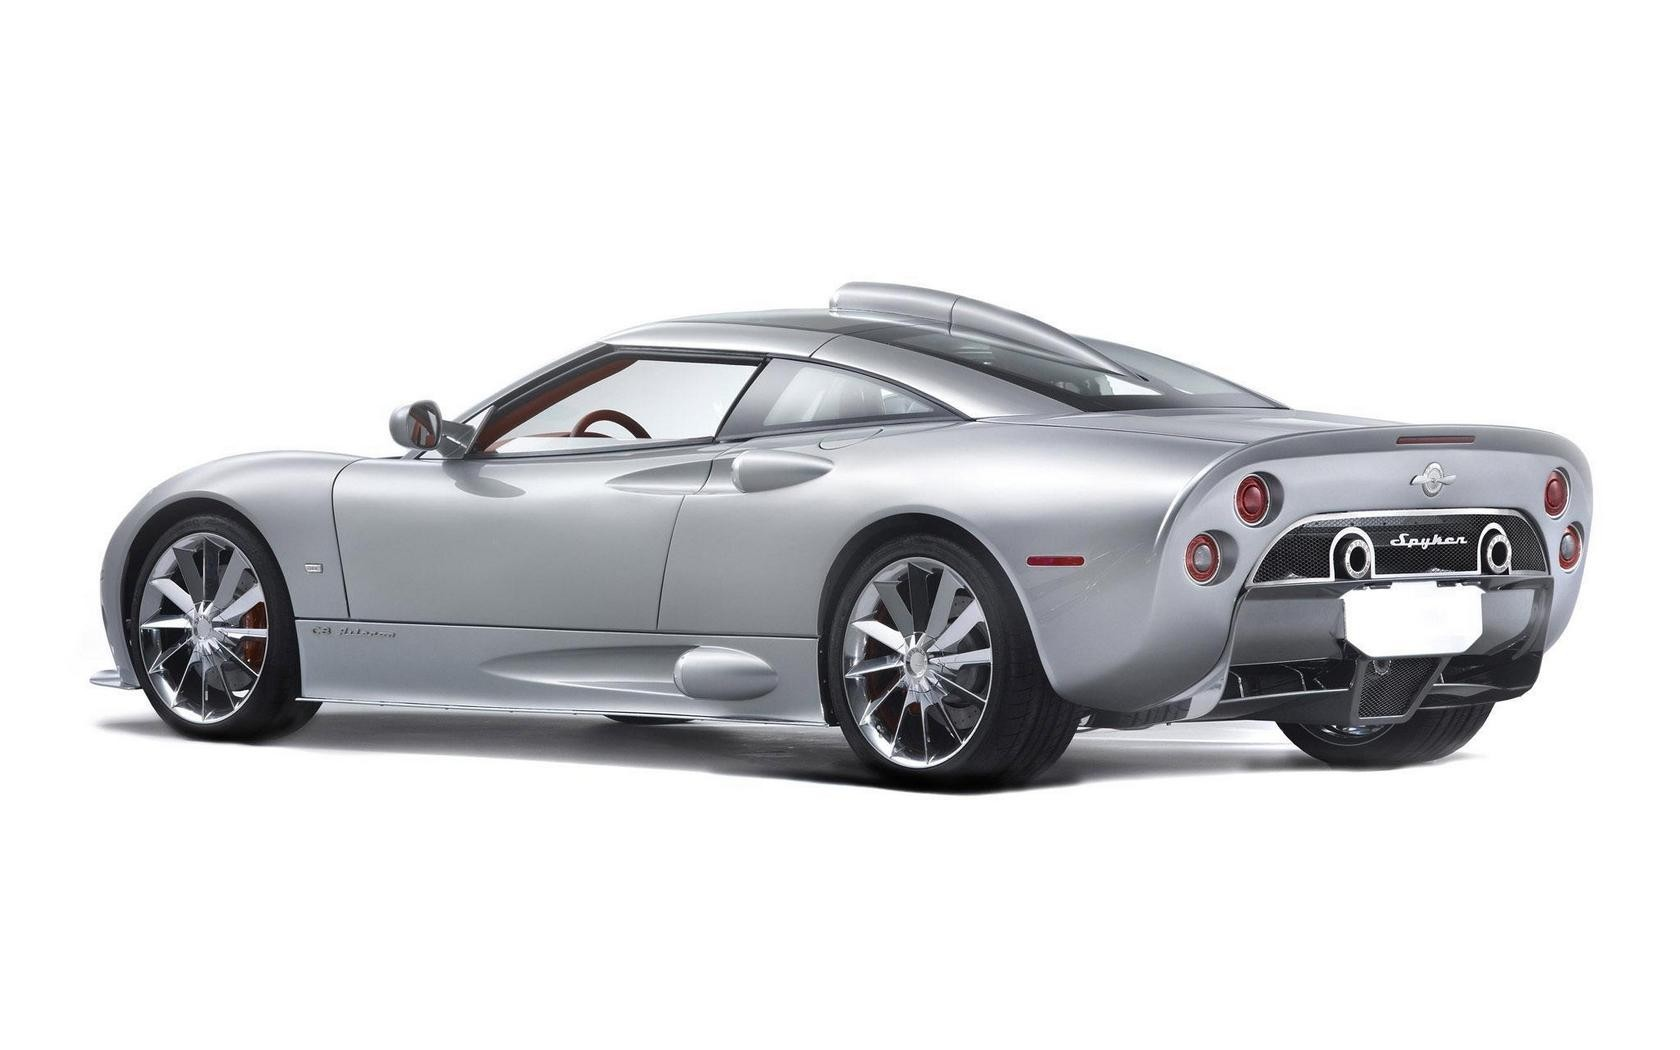 Spyker Aileron cars HD Wallpaper